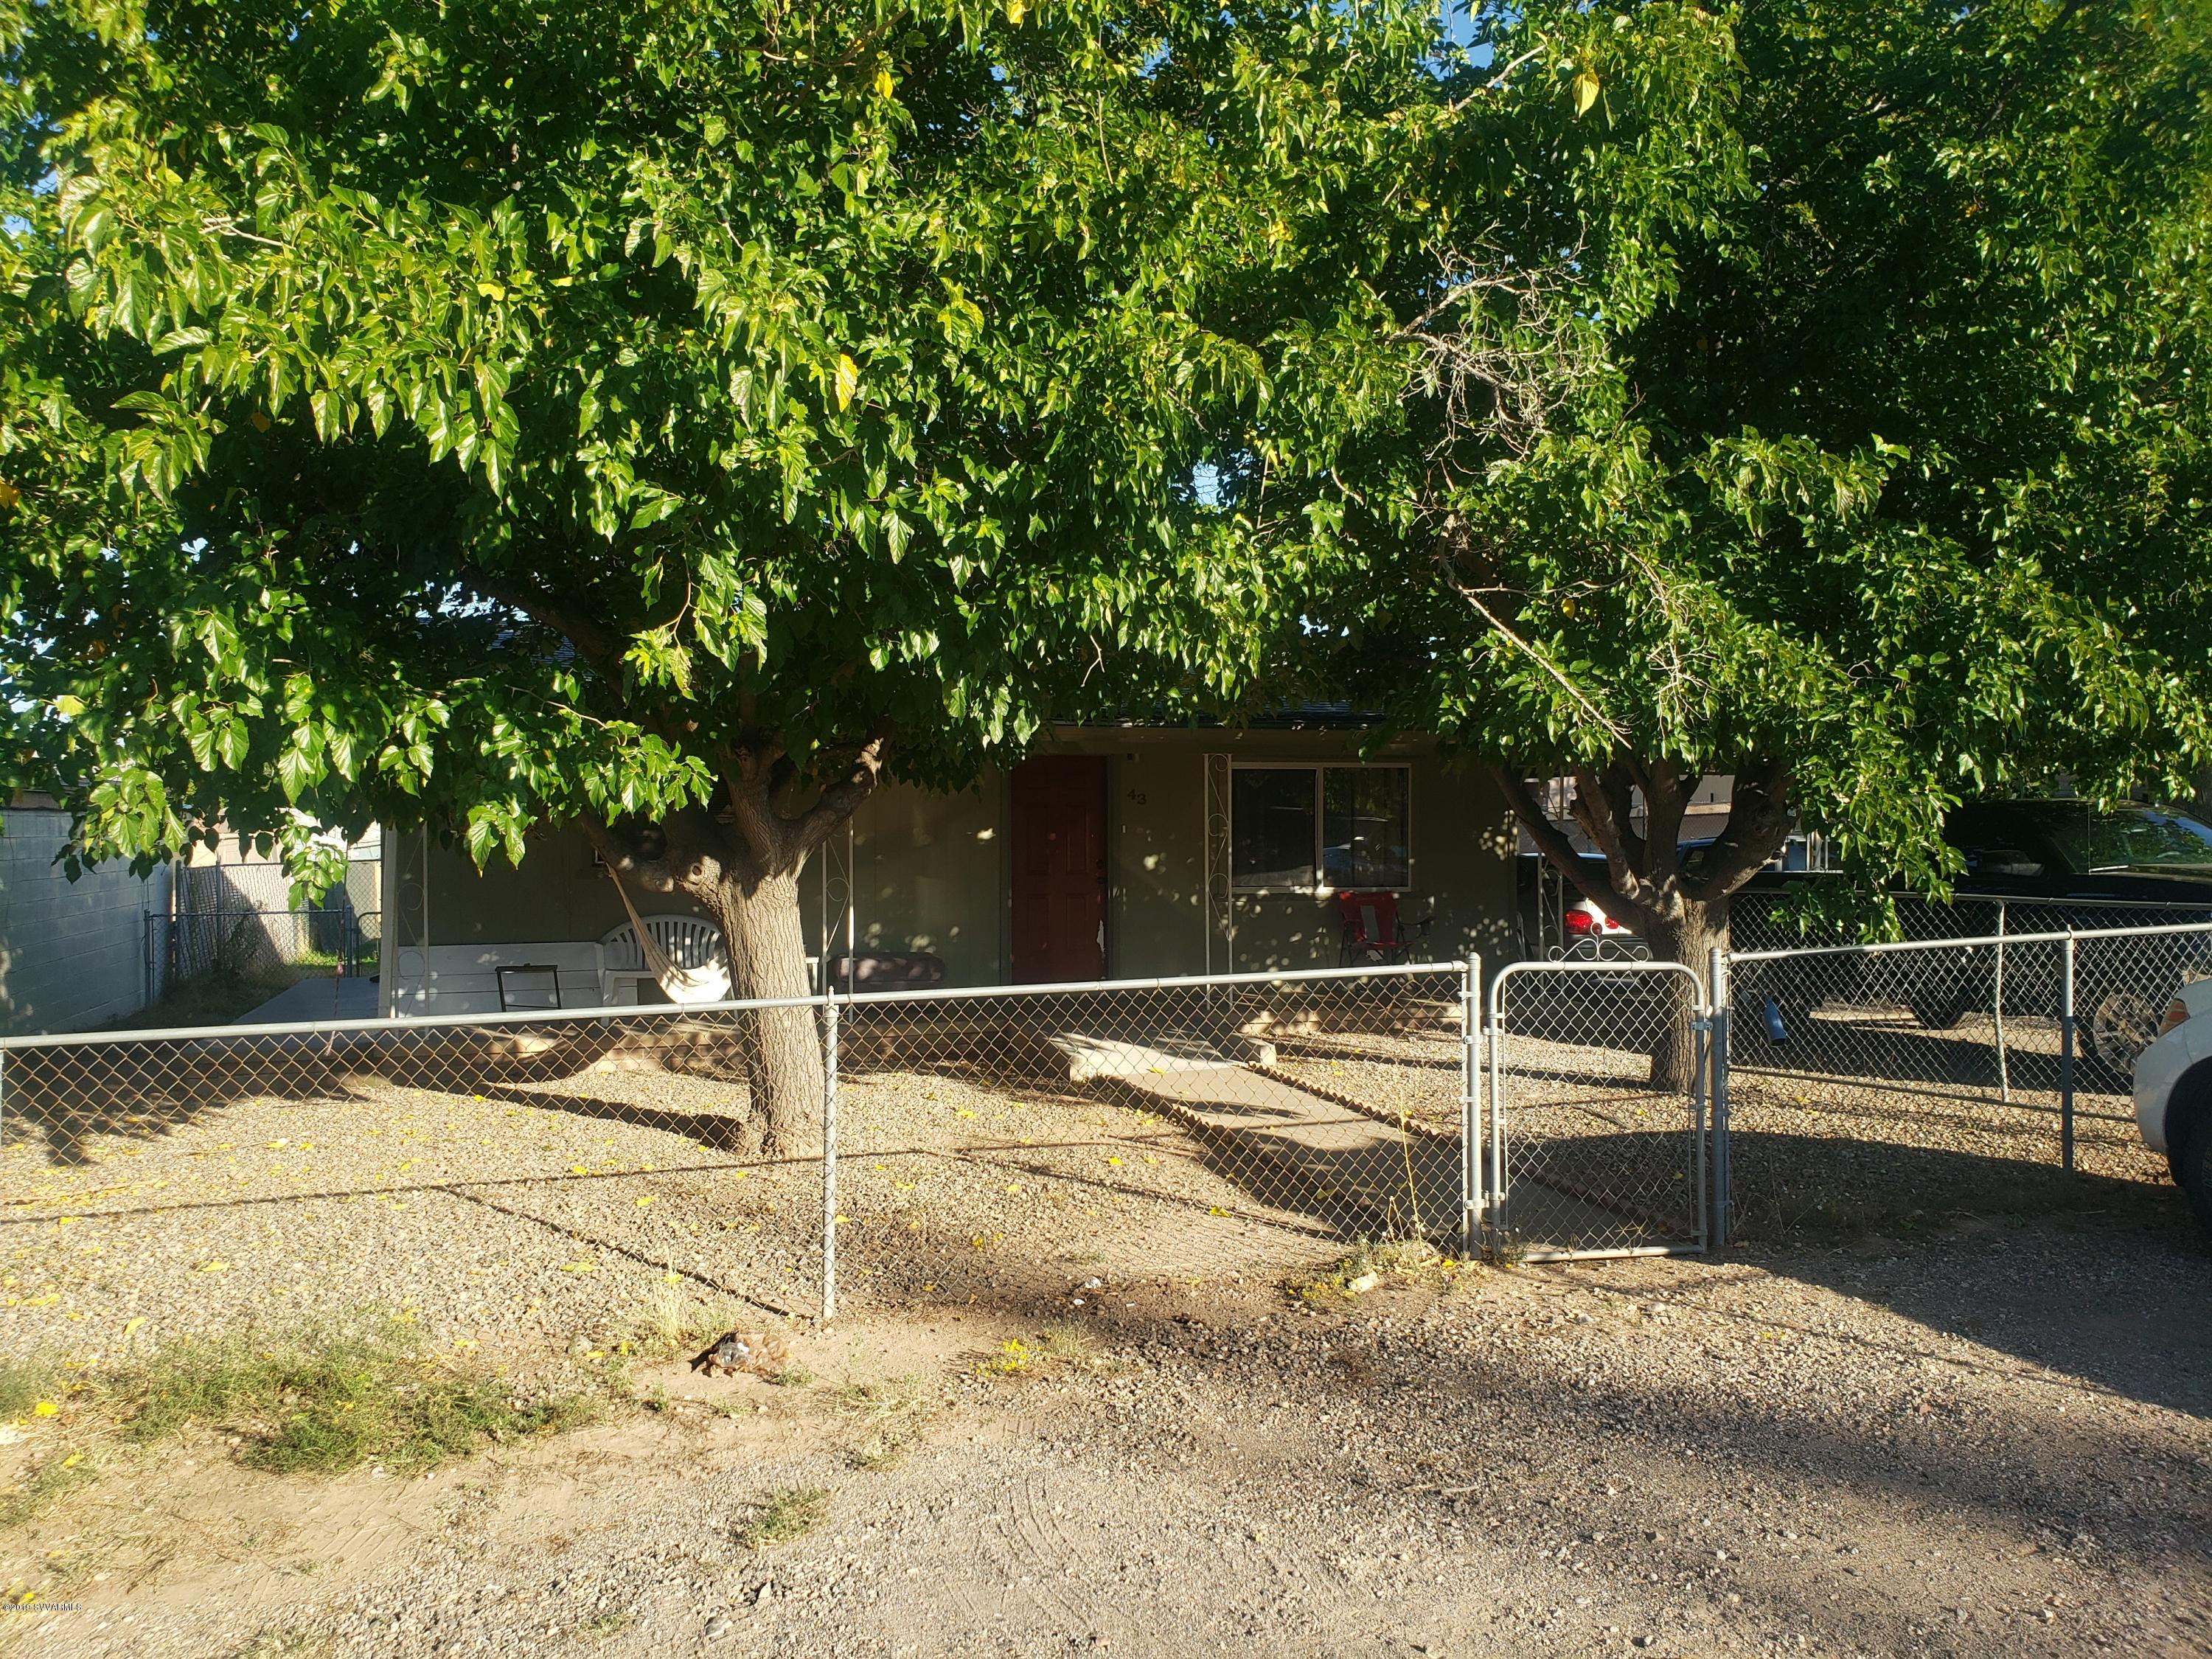 43 S 15th St Cottonwood, AZ 86326